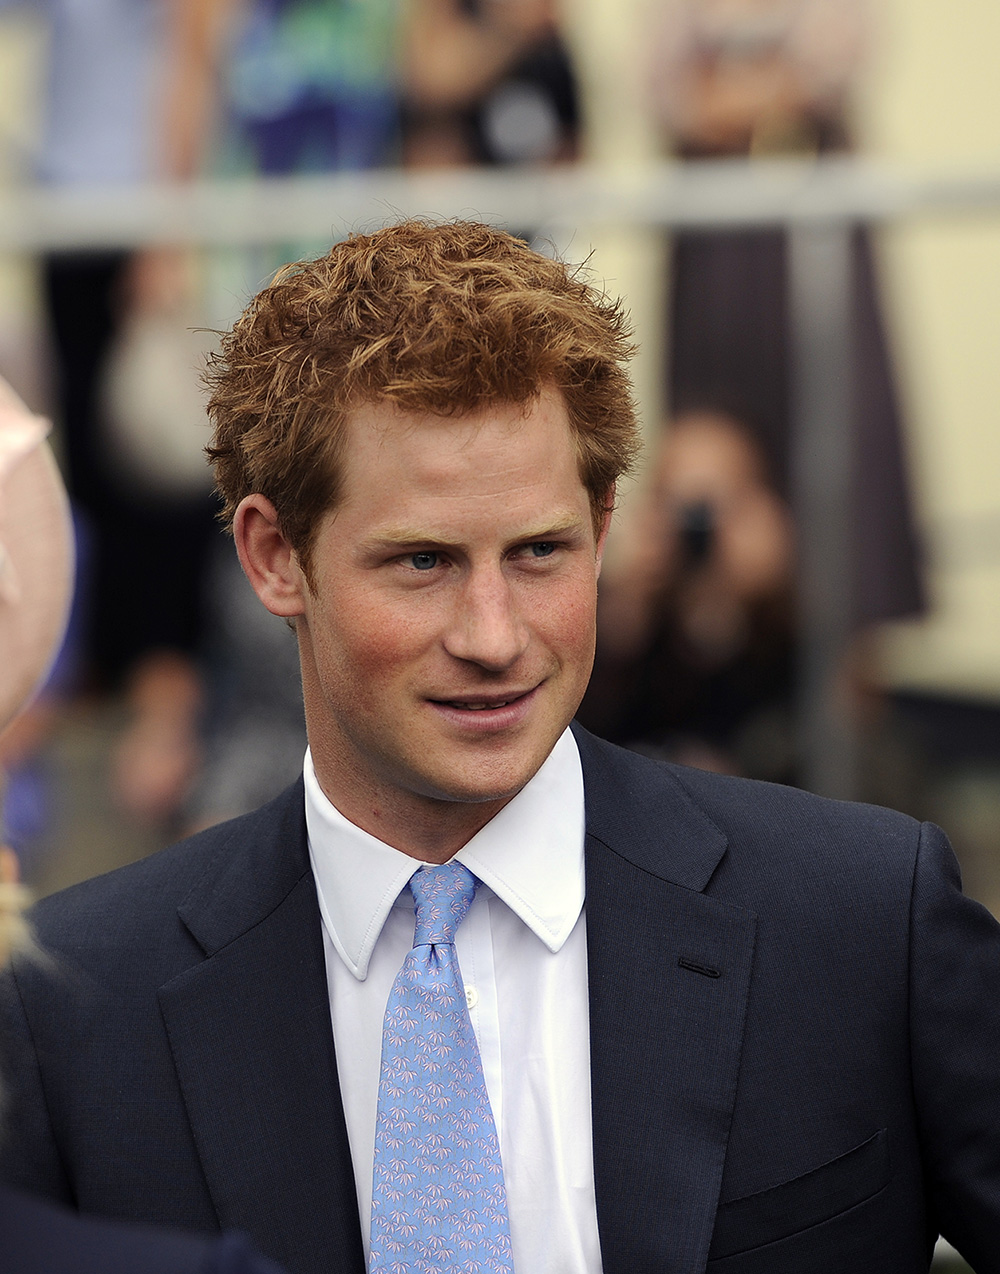 Prince Harry (HRH The Duke of Sussex)